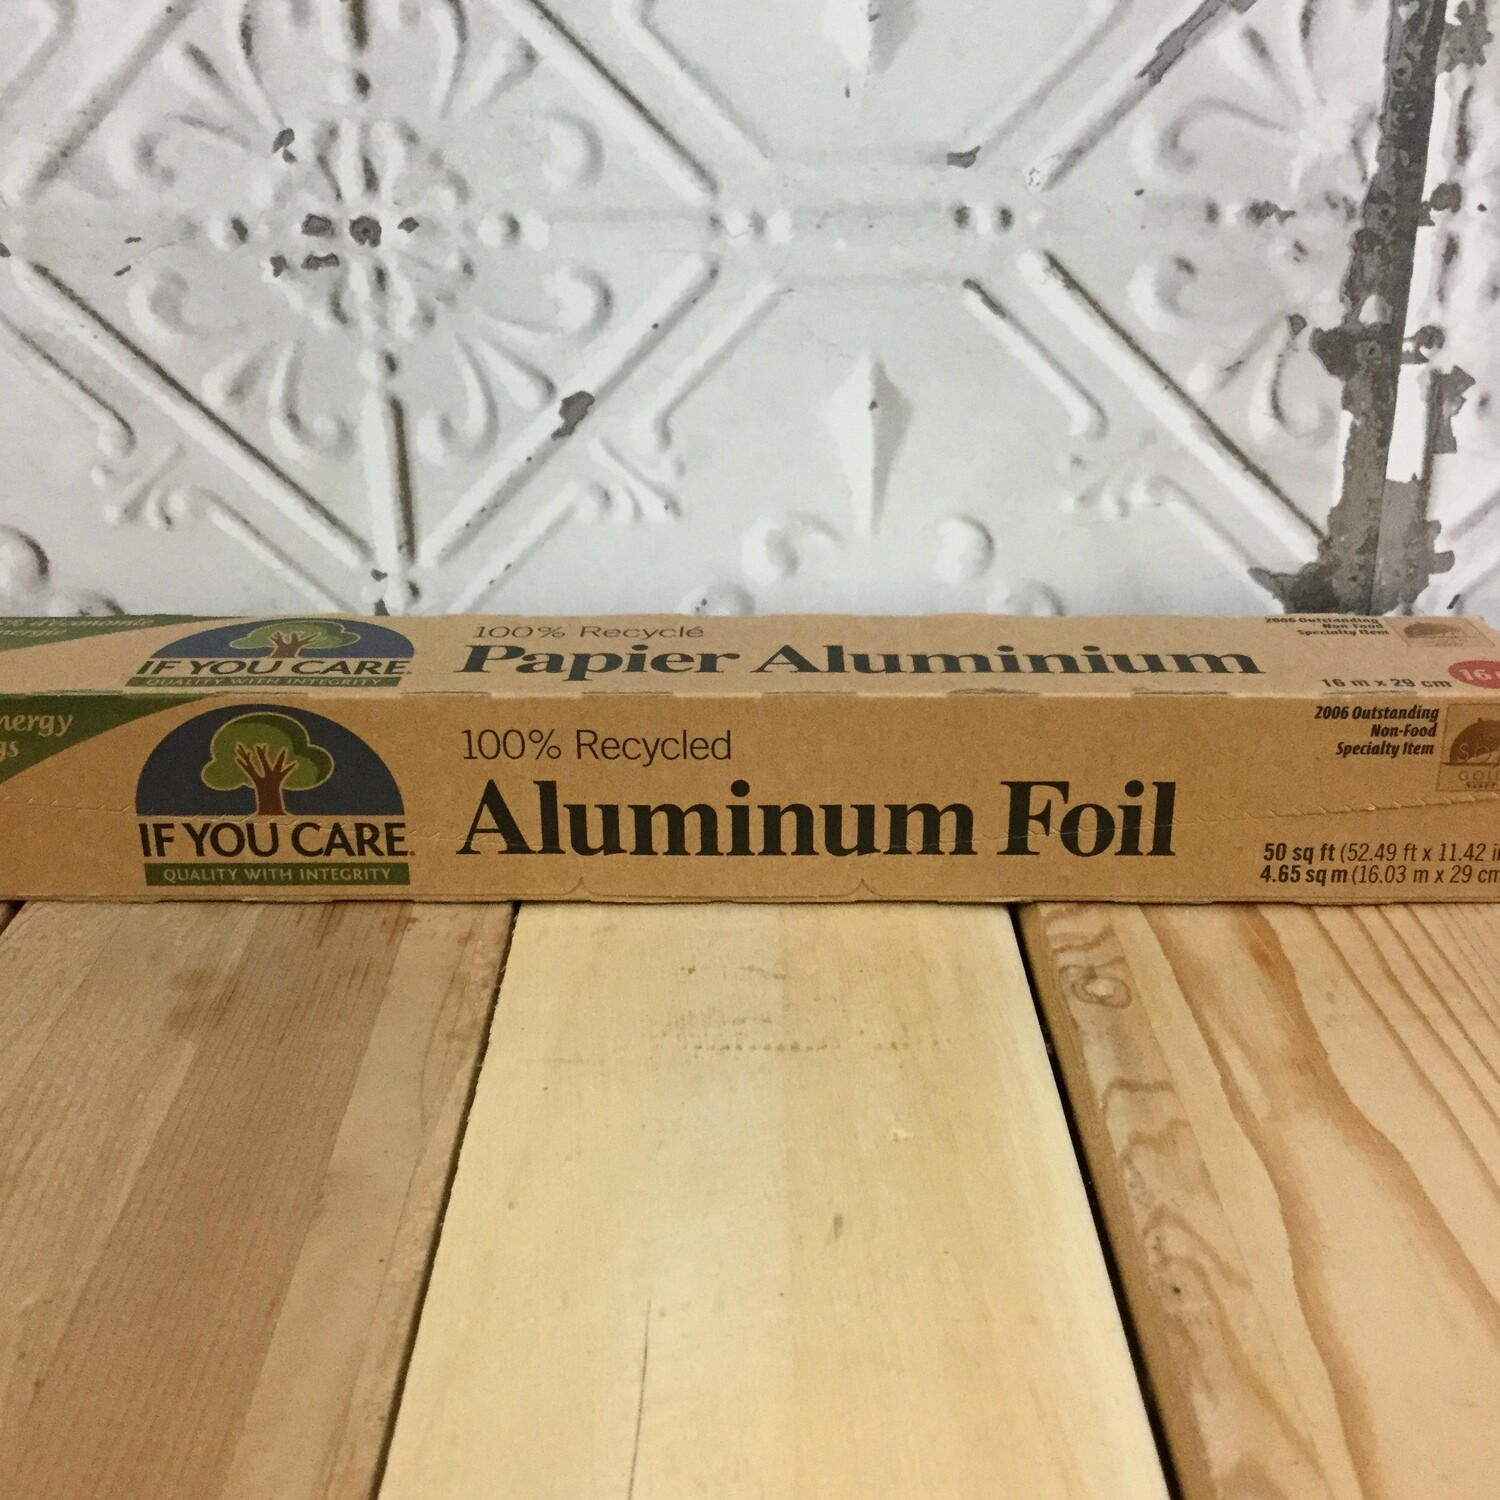 IF YOU CARE Aluminum Foil 50 sq ft